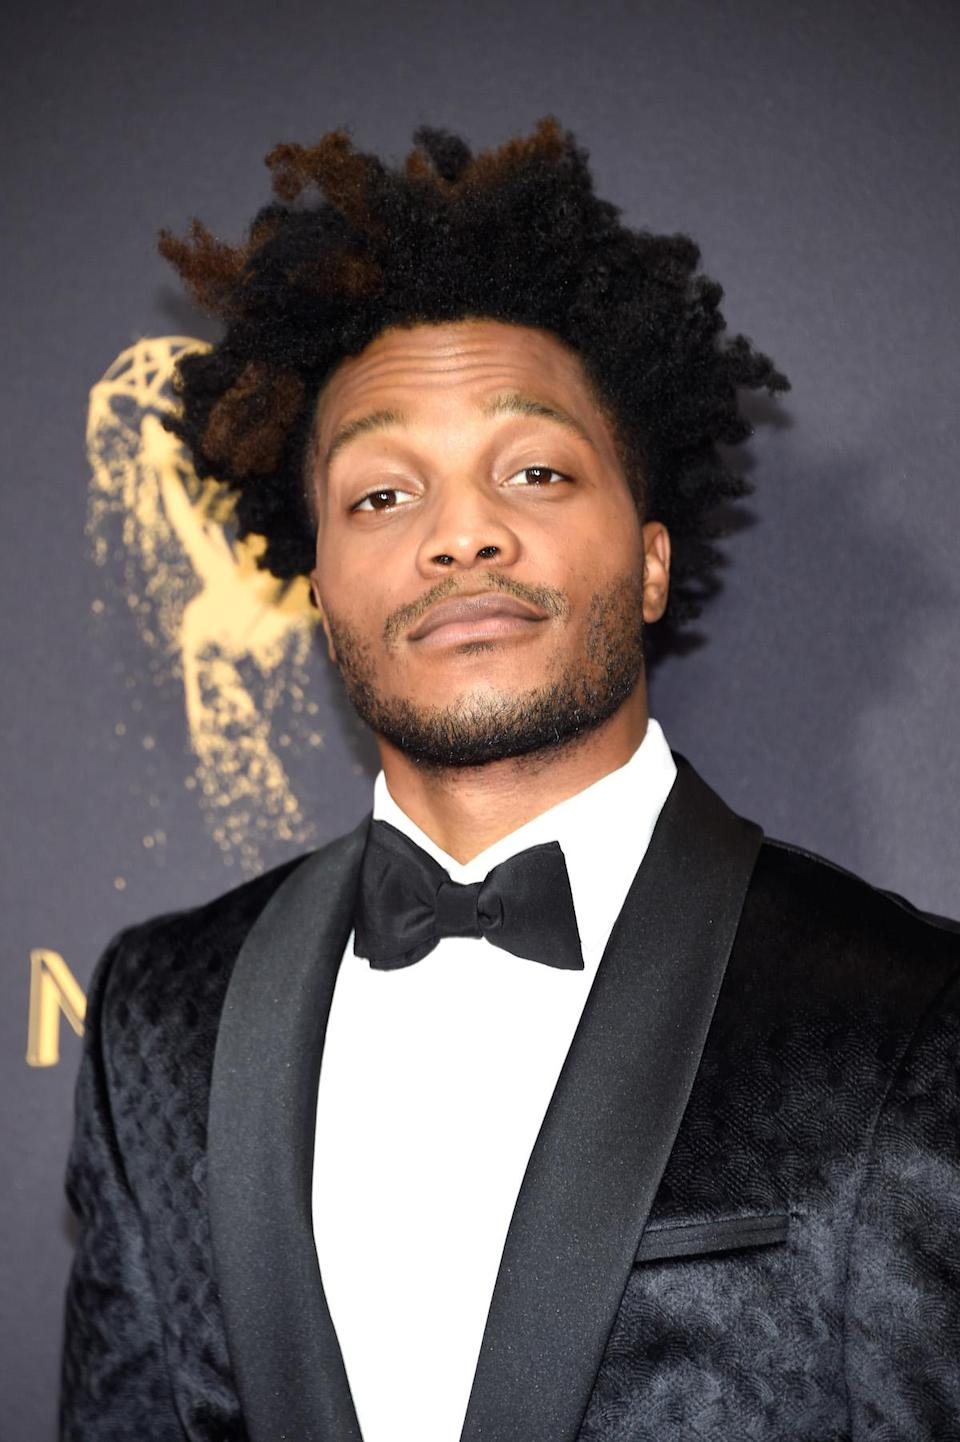 <p>Jermaine Fowler's amazing two-toned 'fro is as captivating as his spiffy tuxedo. (Photo: Kevin Mazur/WireImage) </p>